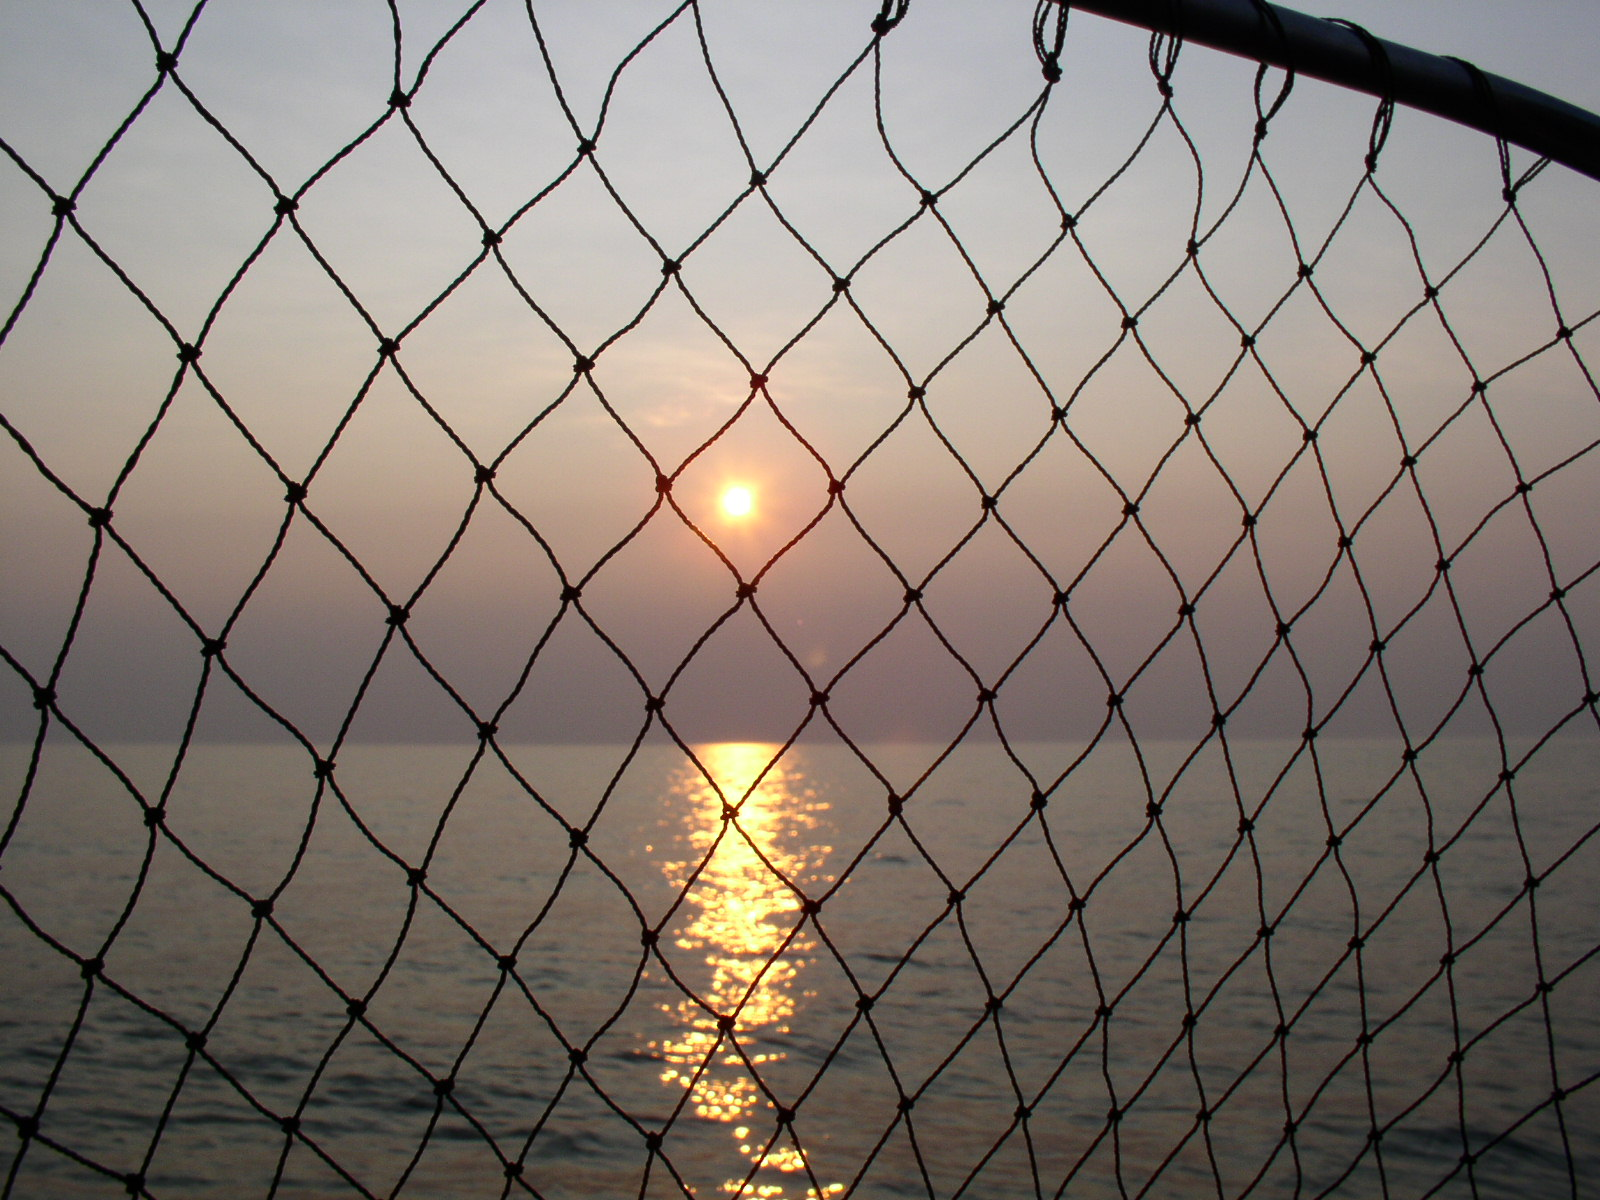 File:Lake Erie Sunset with fish net.JPG - Wikipedia, the free ...